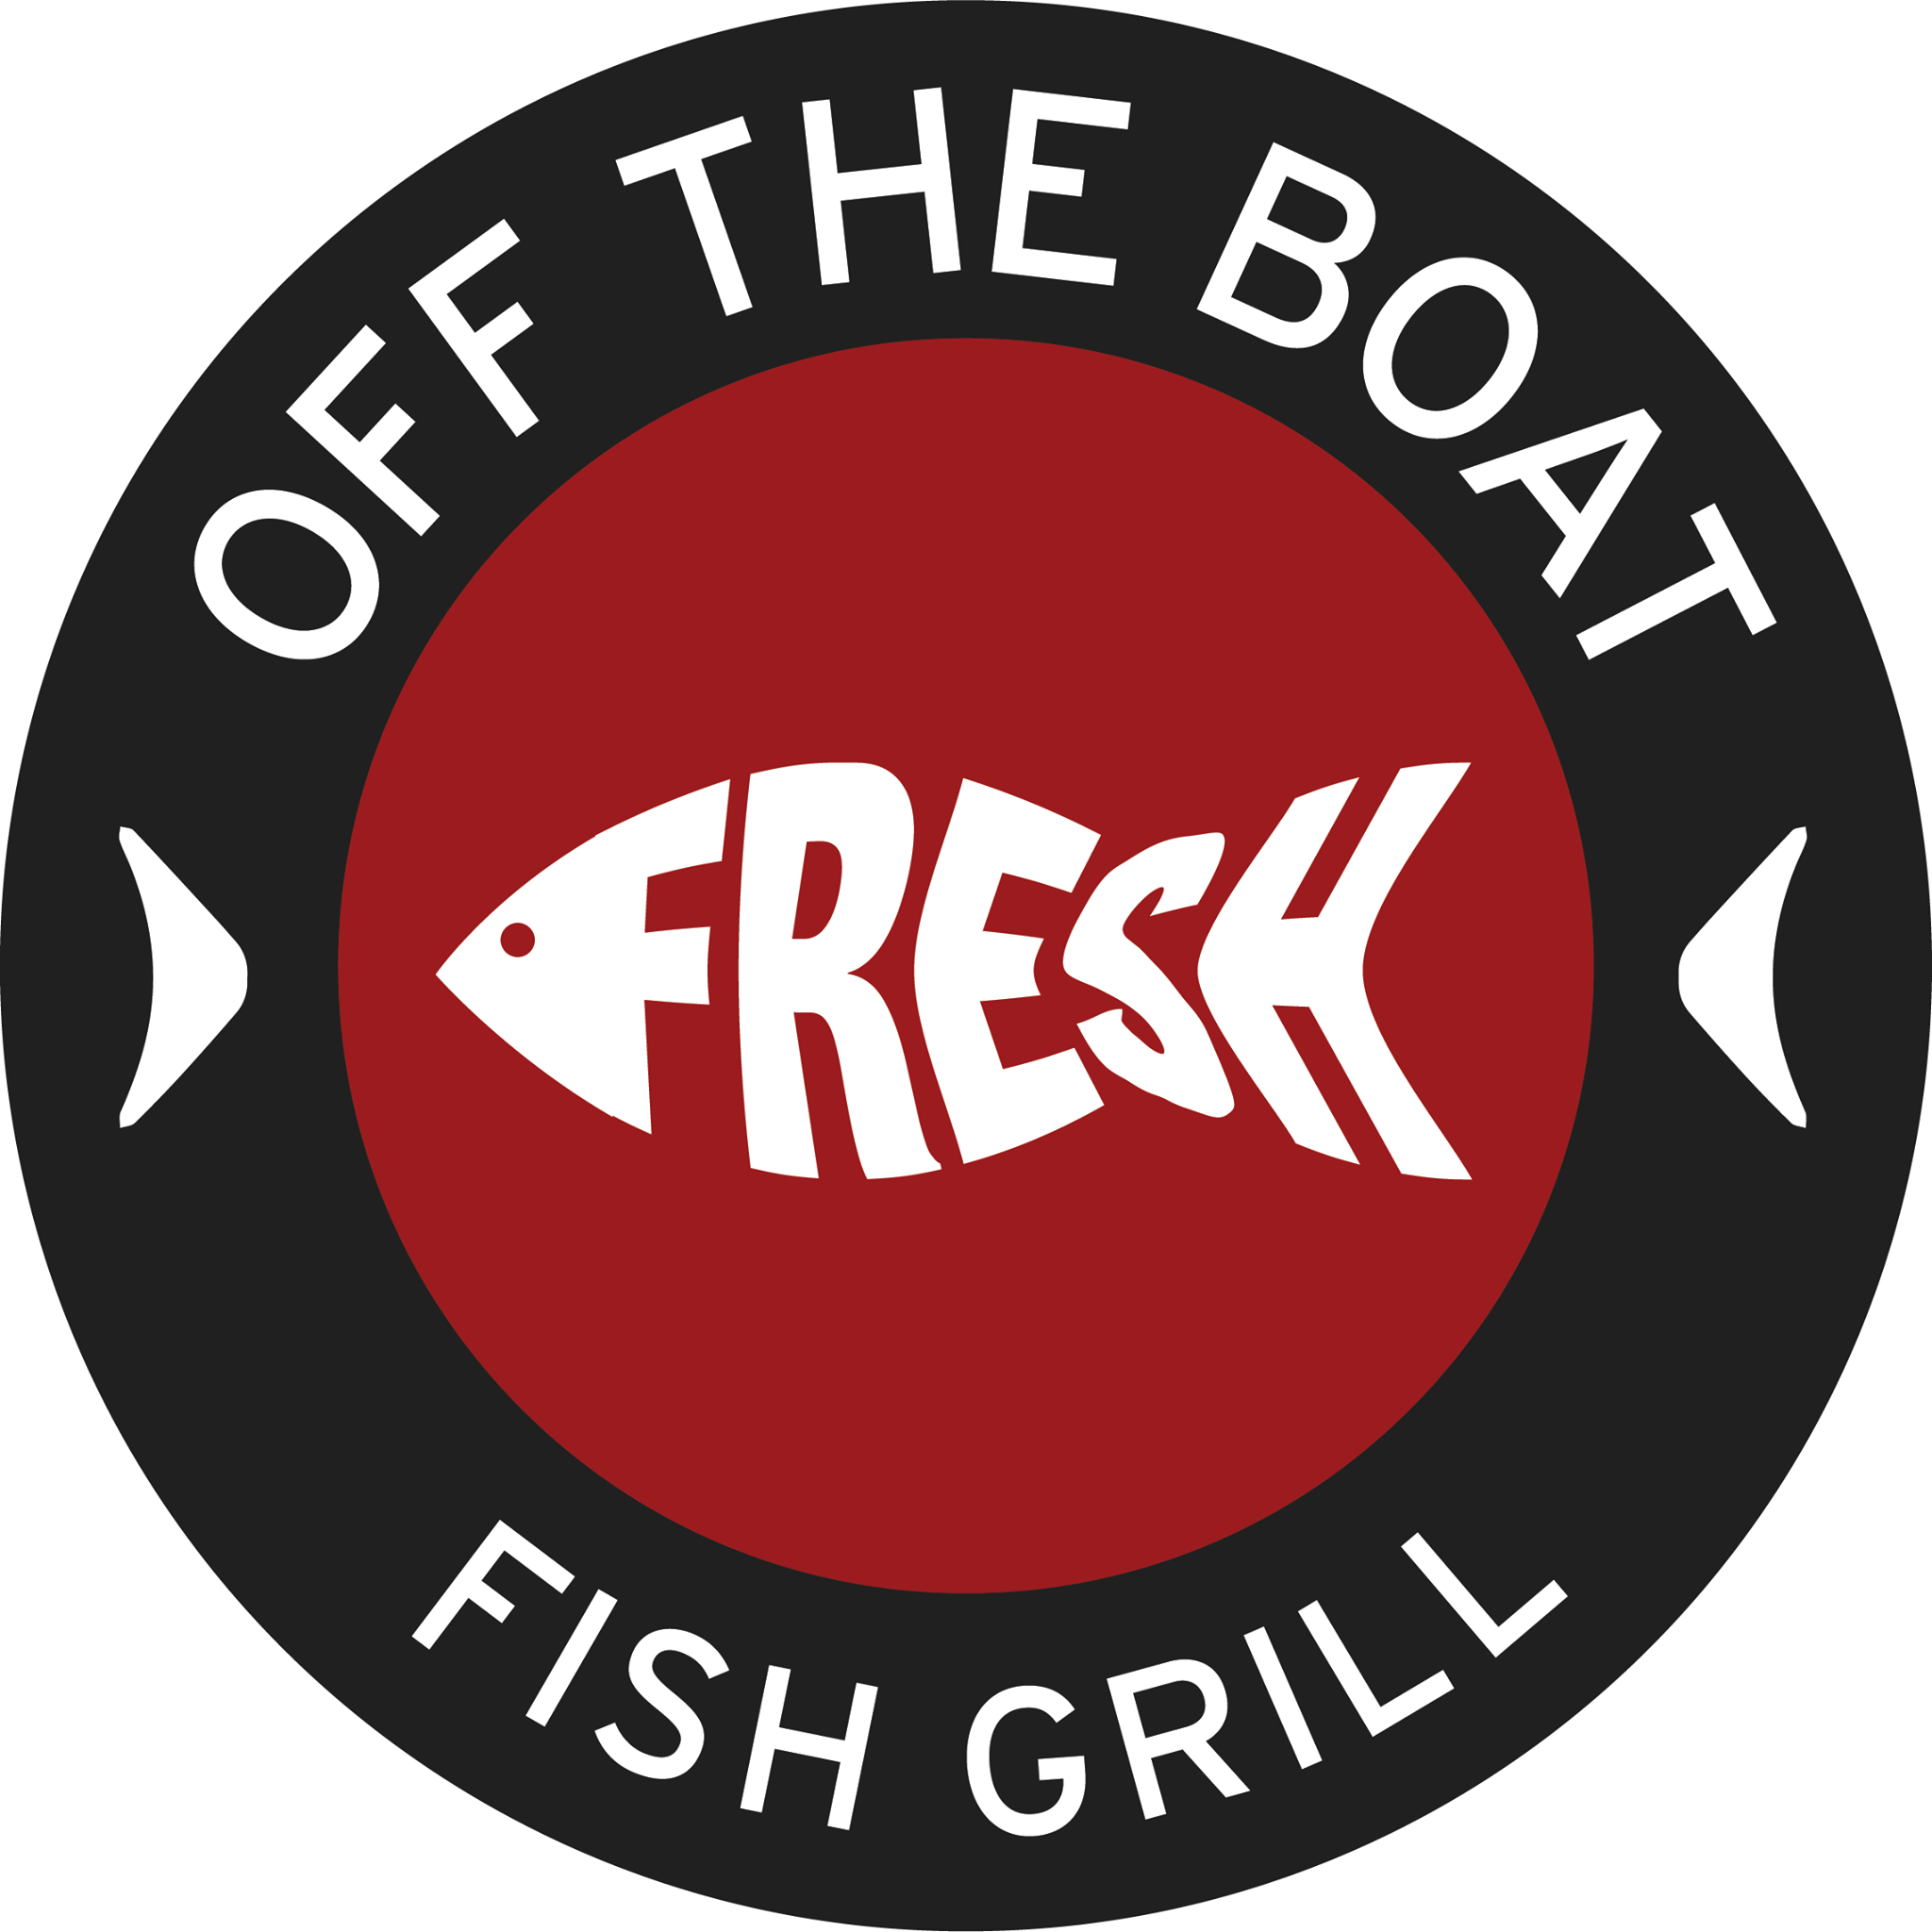 Off The Boat Fish Grill